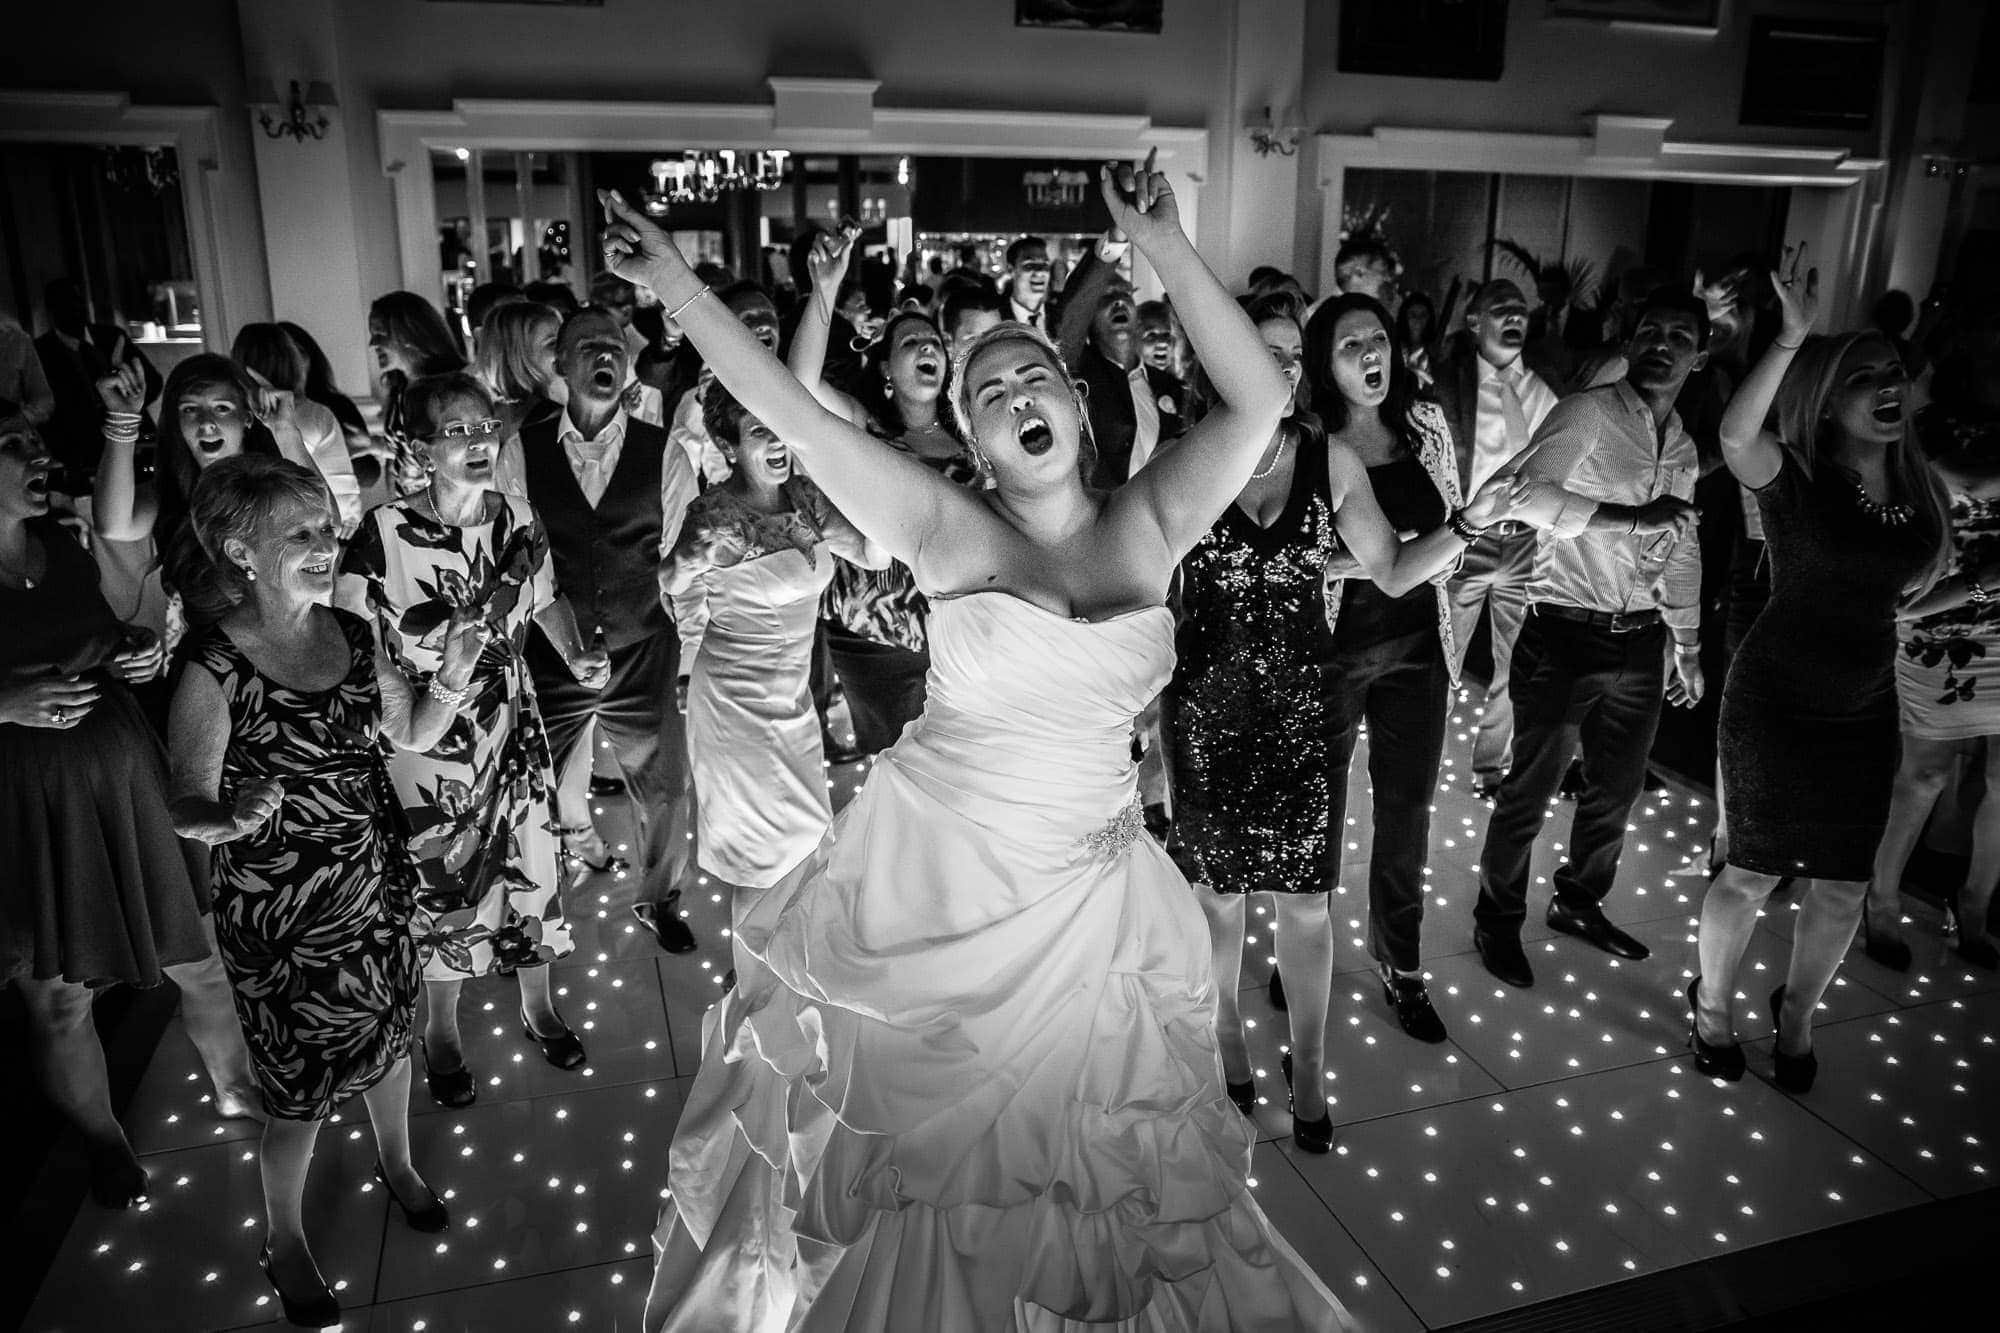 Dancing to Jocelyn Brown live at Wentworth Wedding party